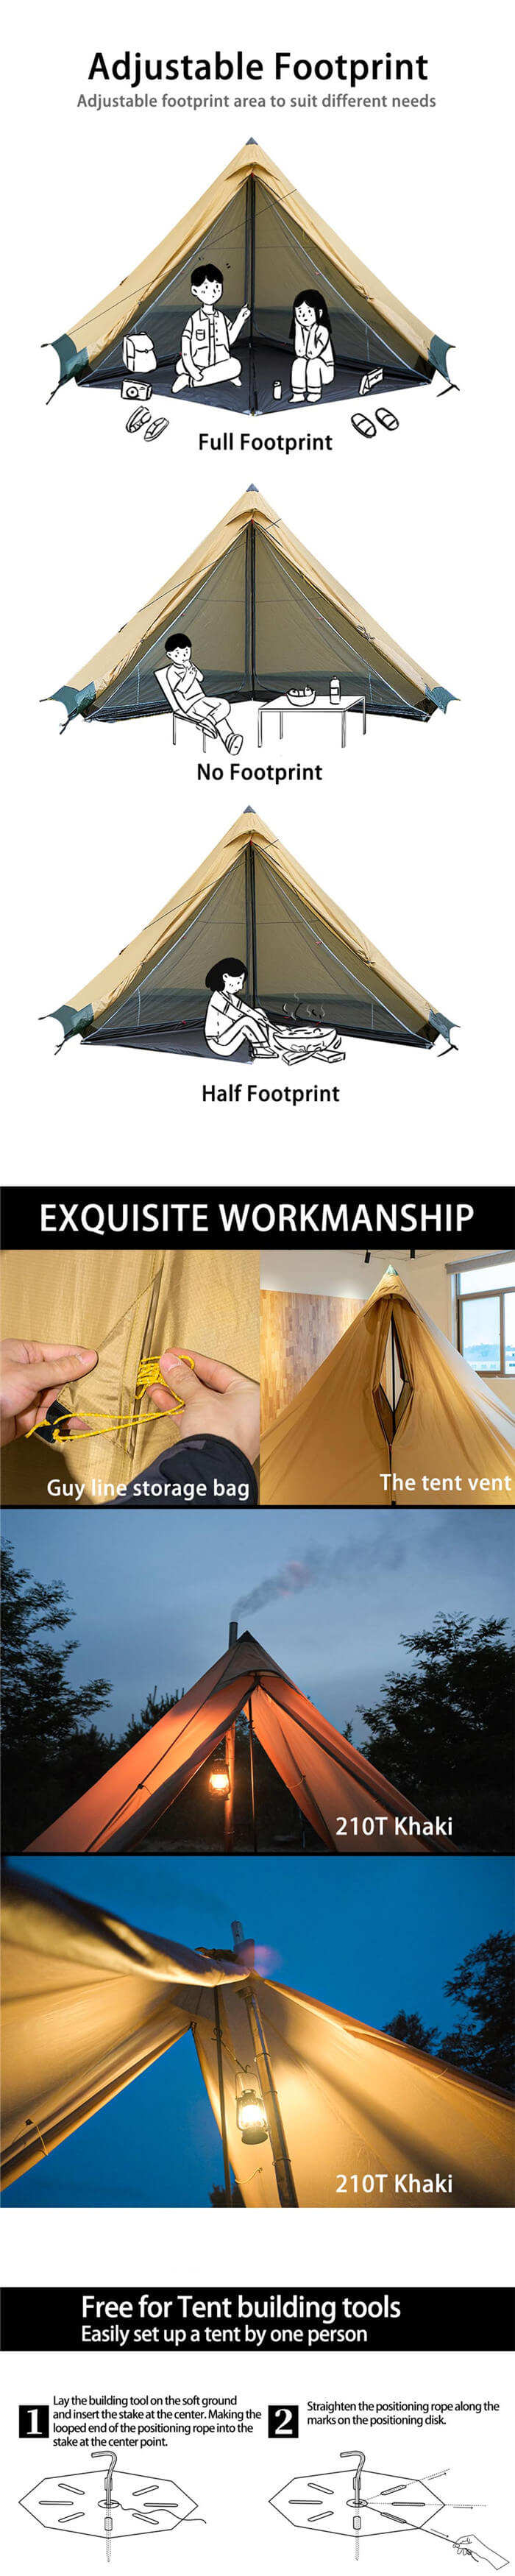 4-6 person hot tent